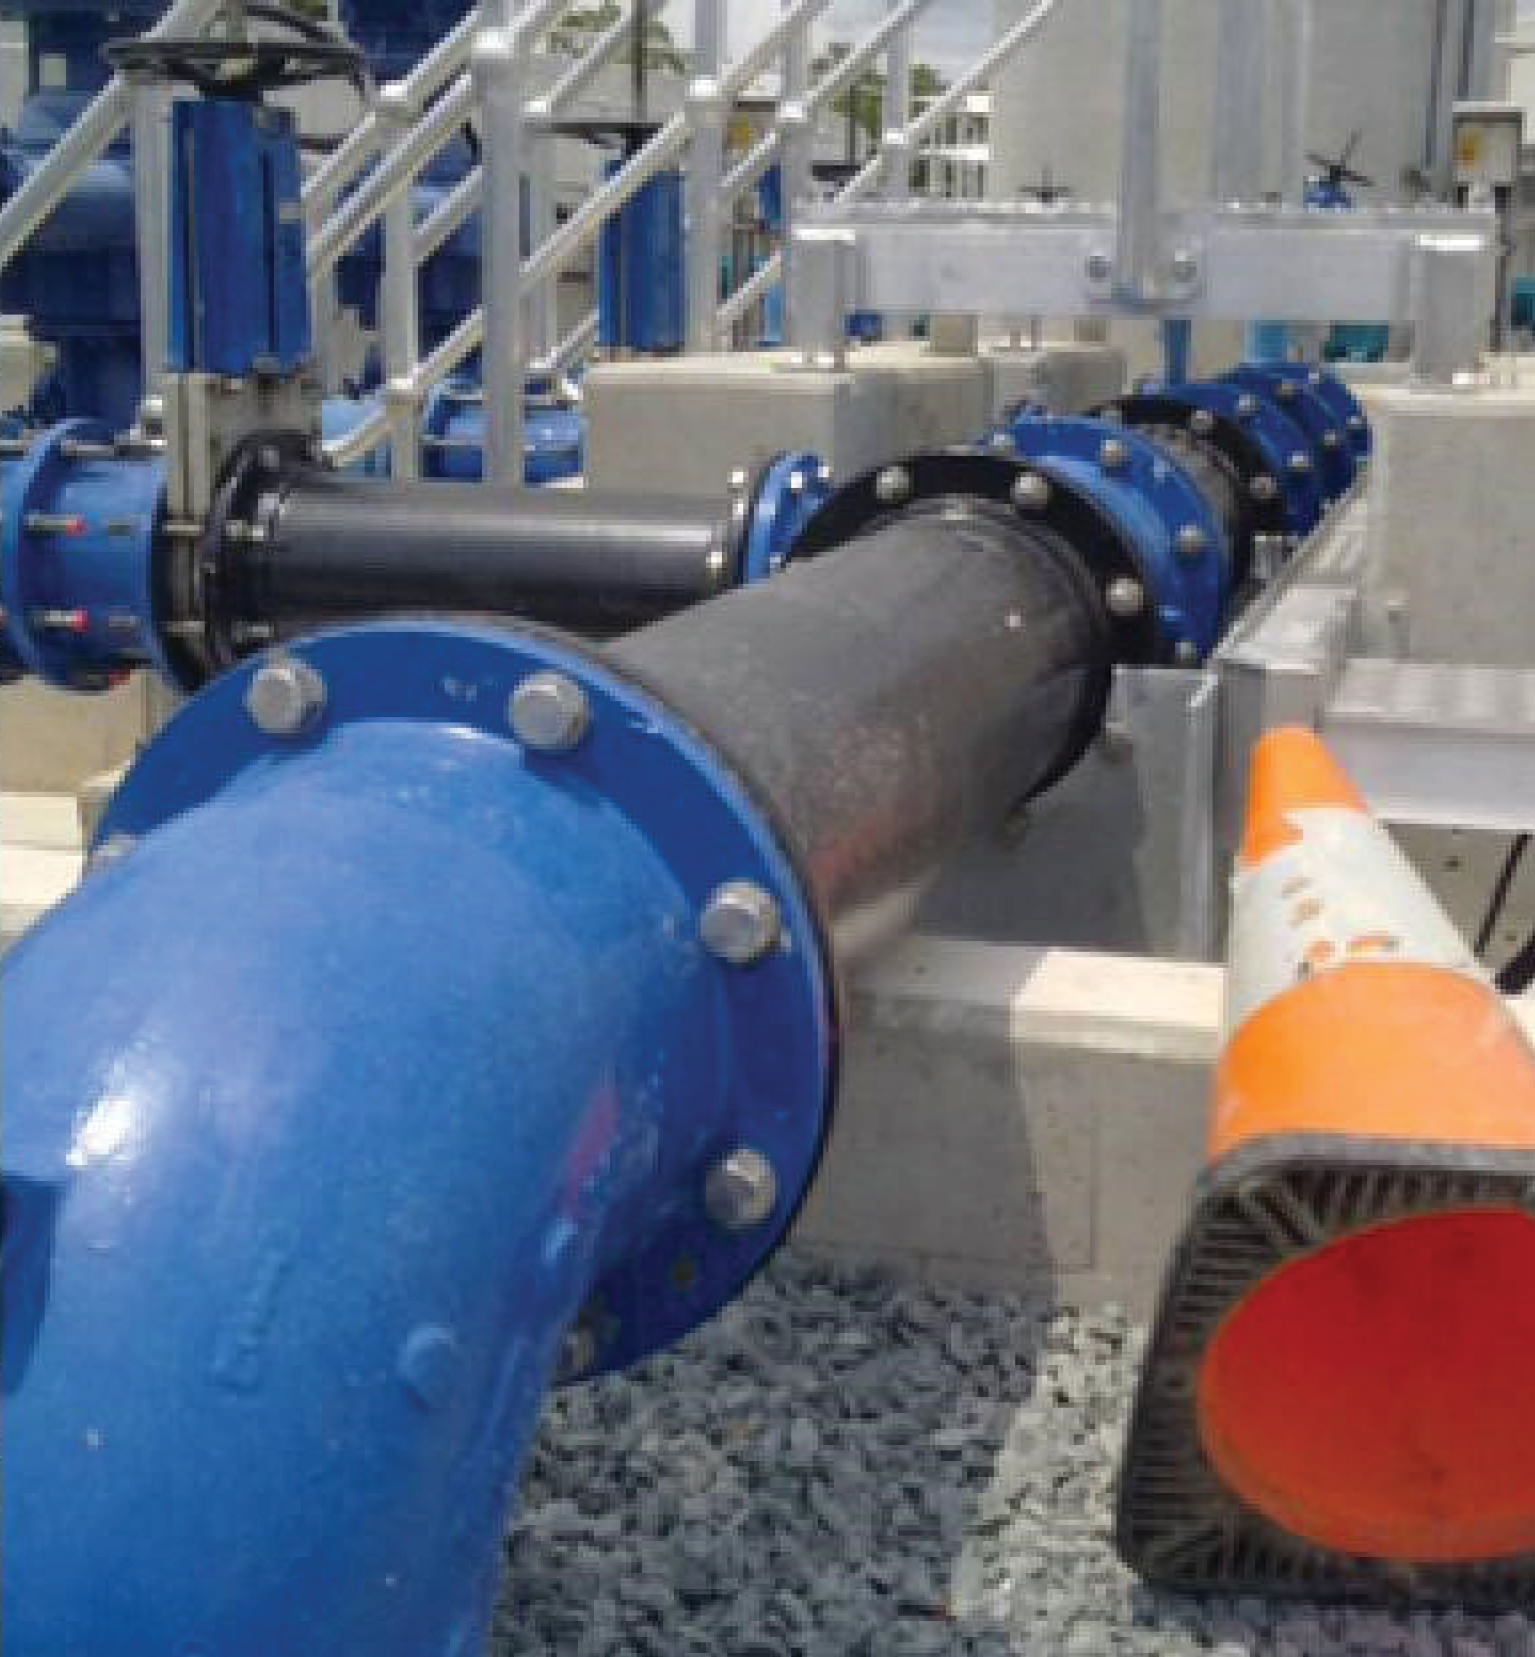 Water Solutions Pvc Pipes Valves Hdpe Viadux For Electrical Wiring Metal And Pe Compare Evaluate Tarago Reconnection Project